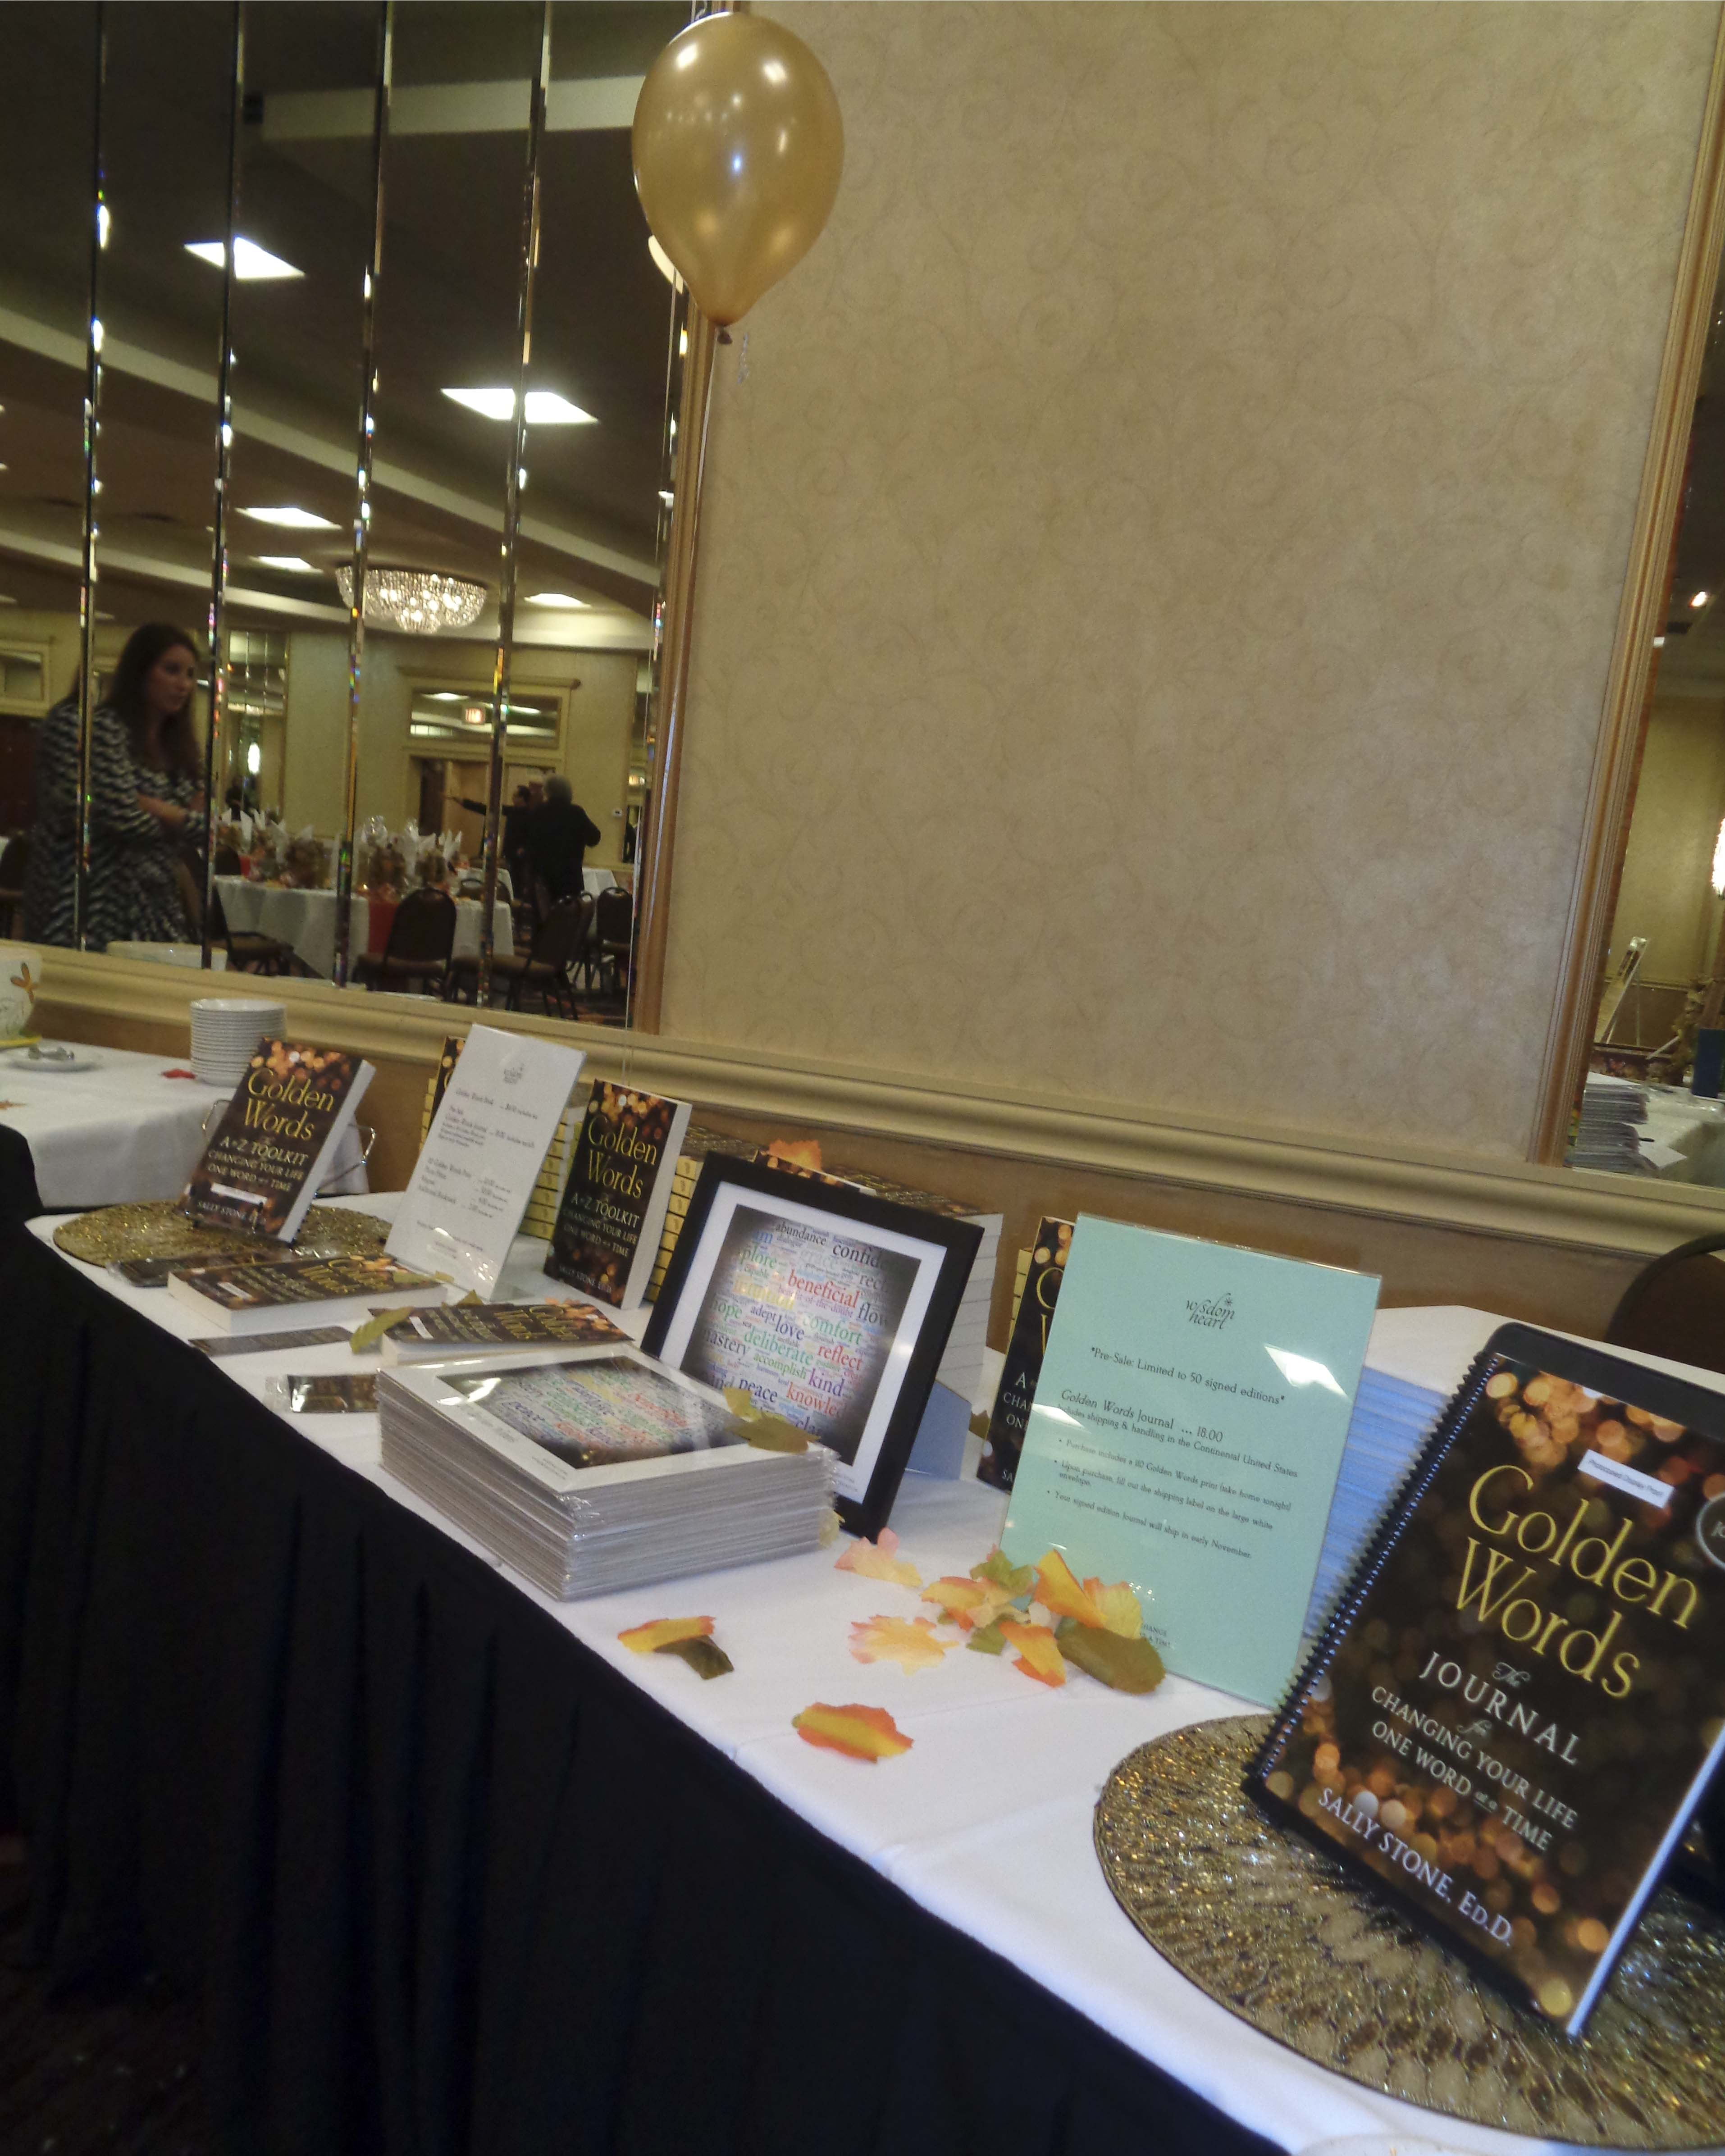 Little Company of Mary Keynote—Golden Words book display